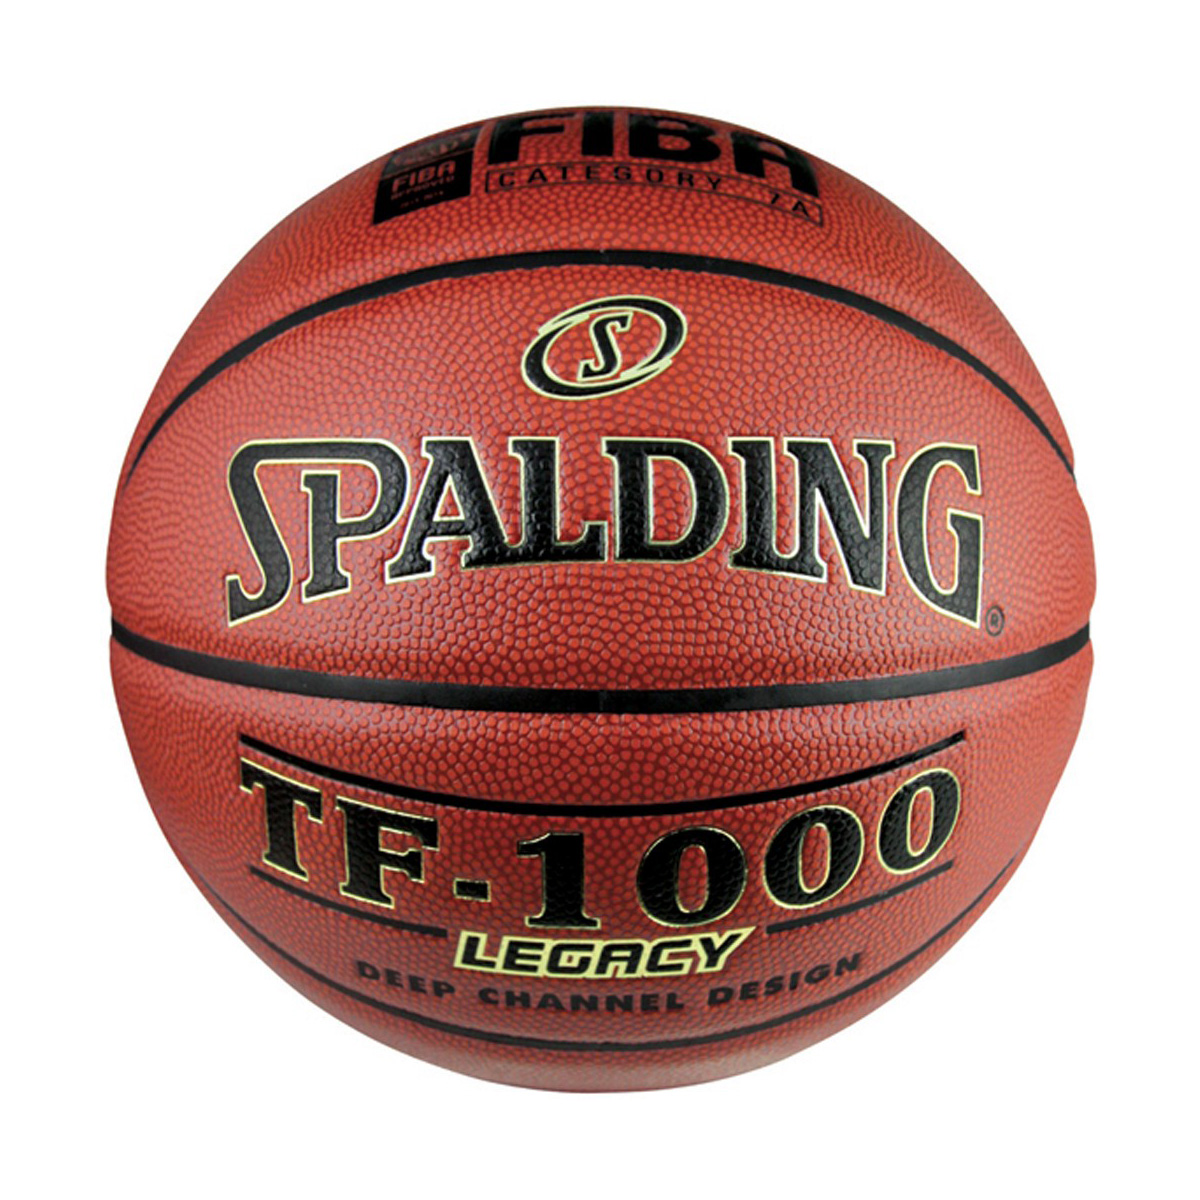 Spalding TF-1000 Legacy Basketball Size 7  39dec80266d8